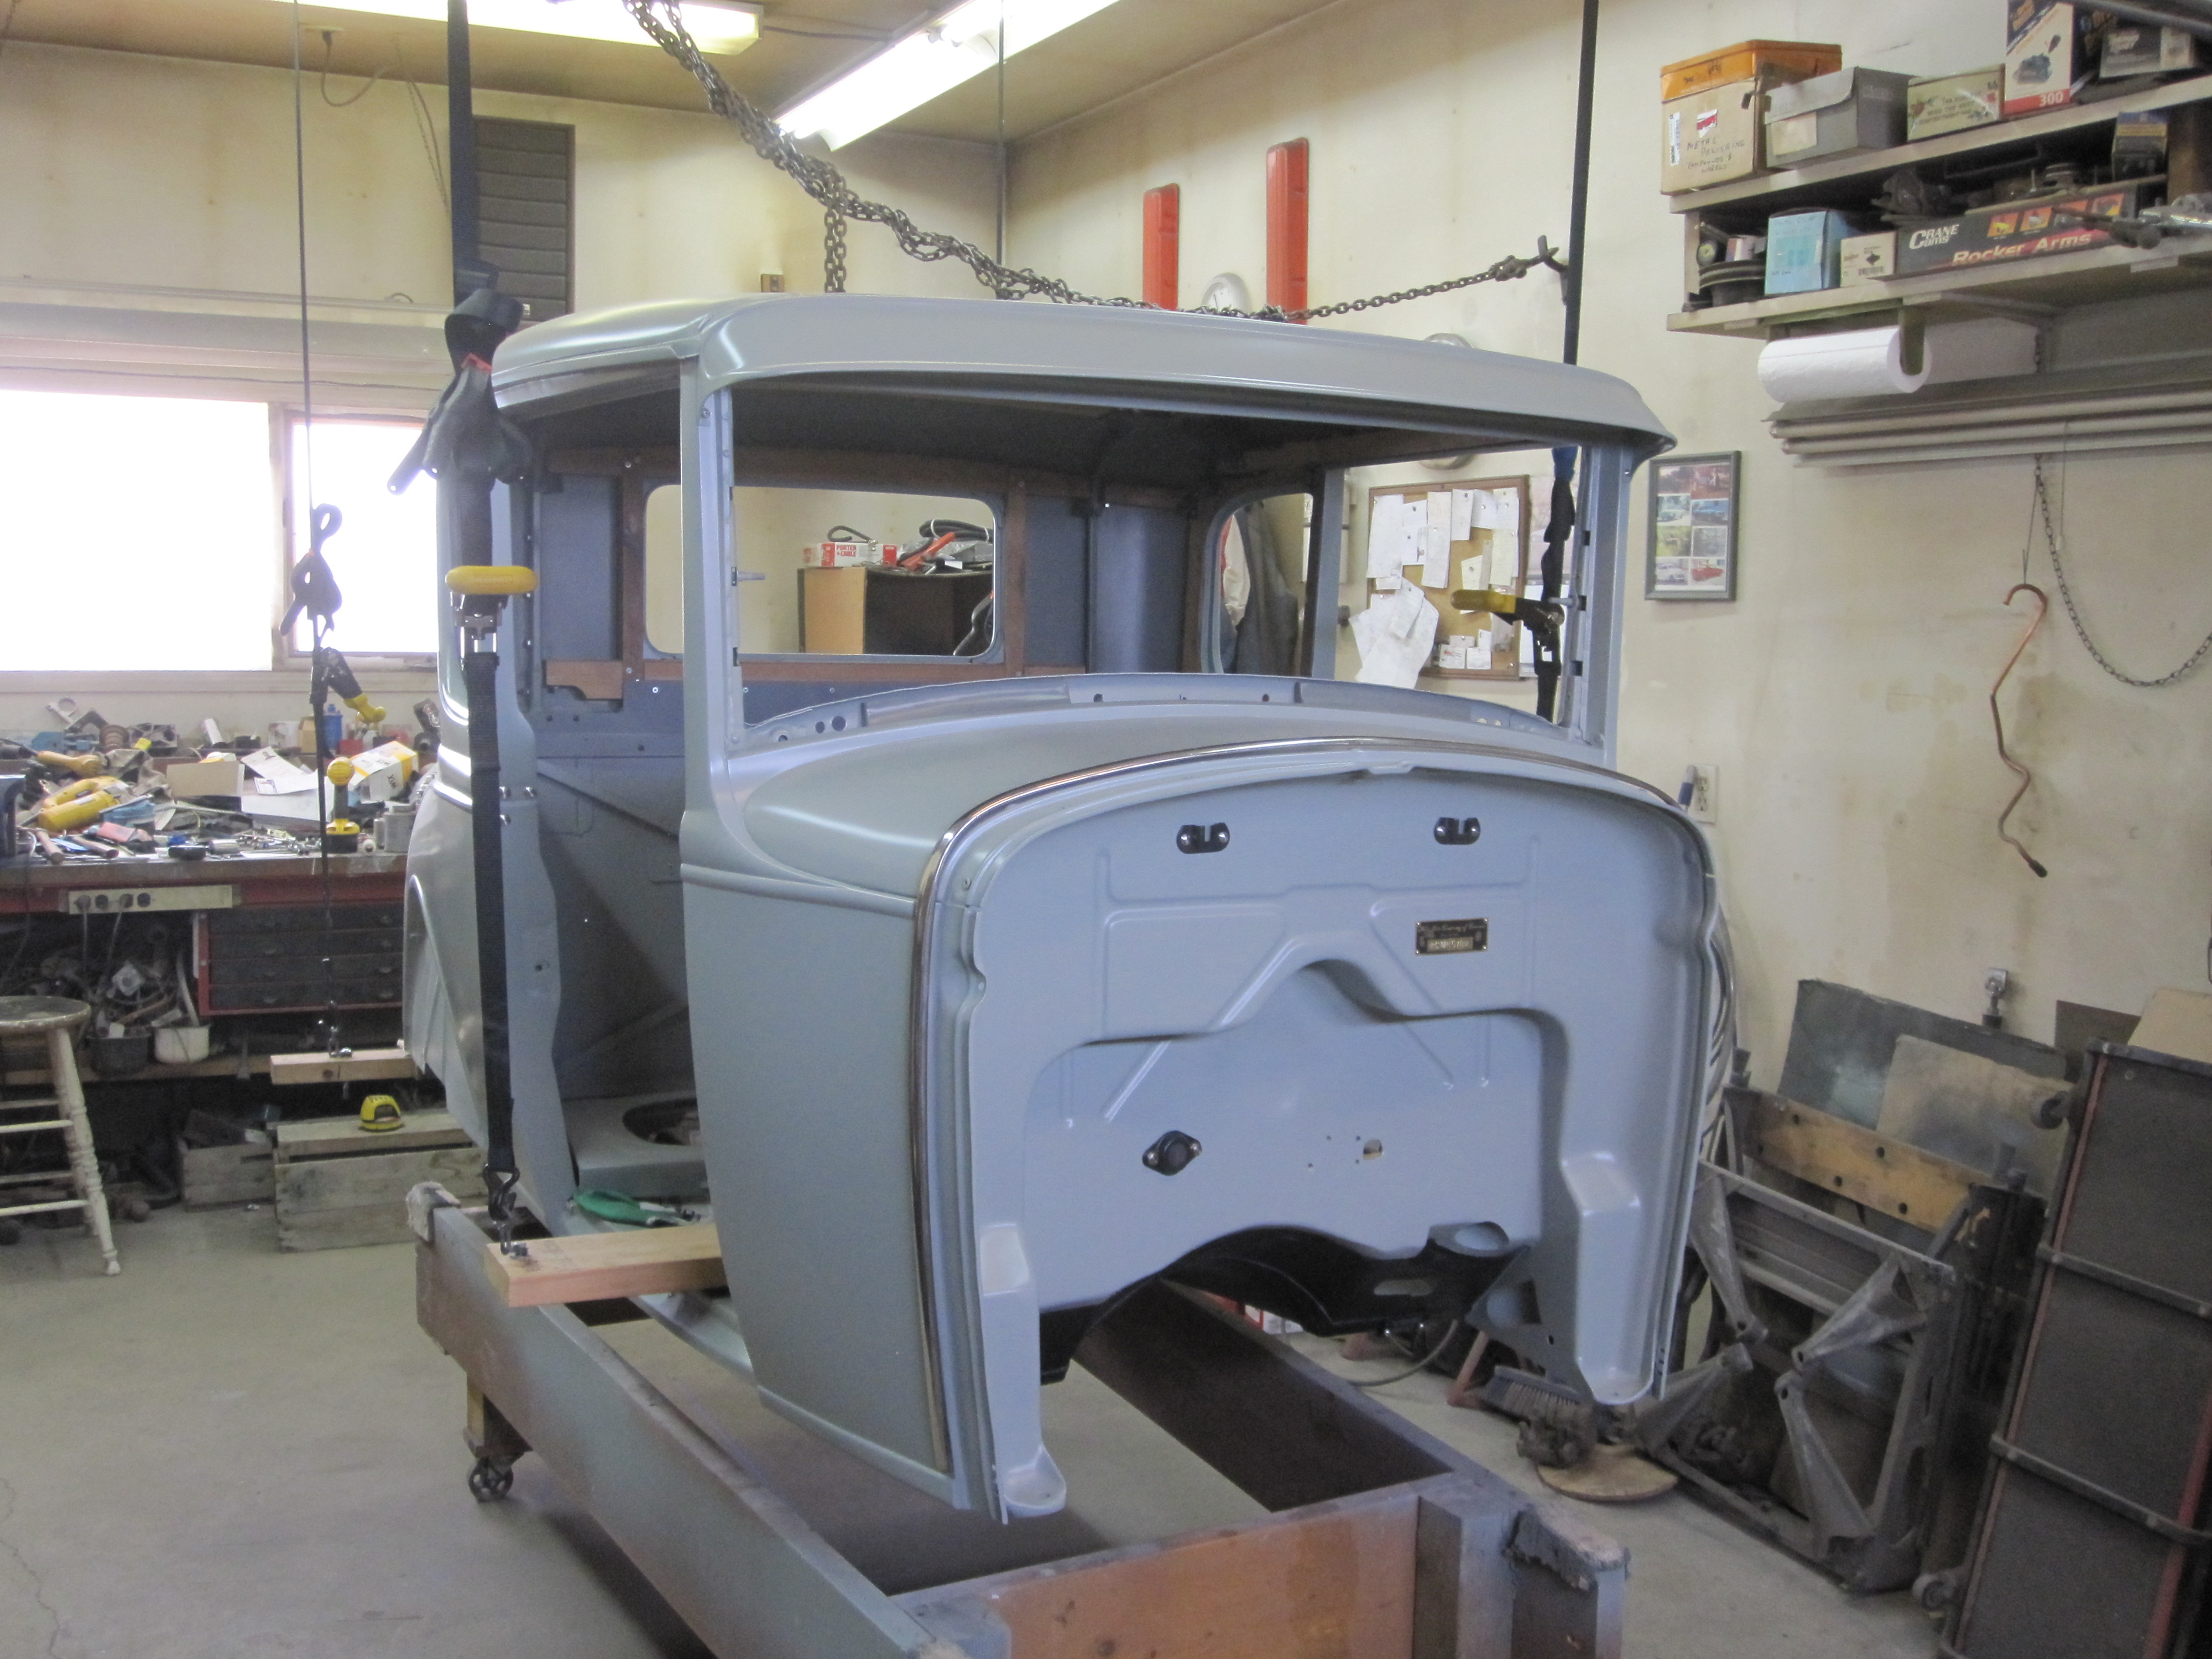 Building A 1930 Ford Coupe Hot Rod Take Look At The Blog To See Model Electrical Wiring Img 2430 Lifting Body 1